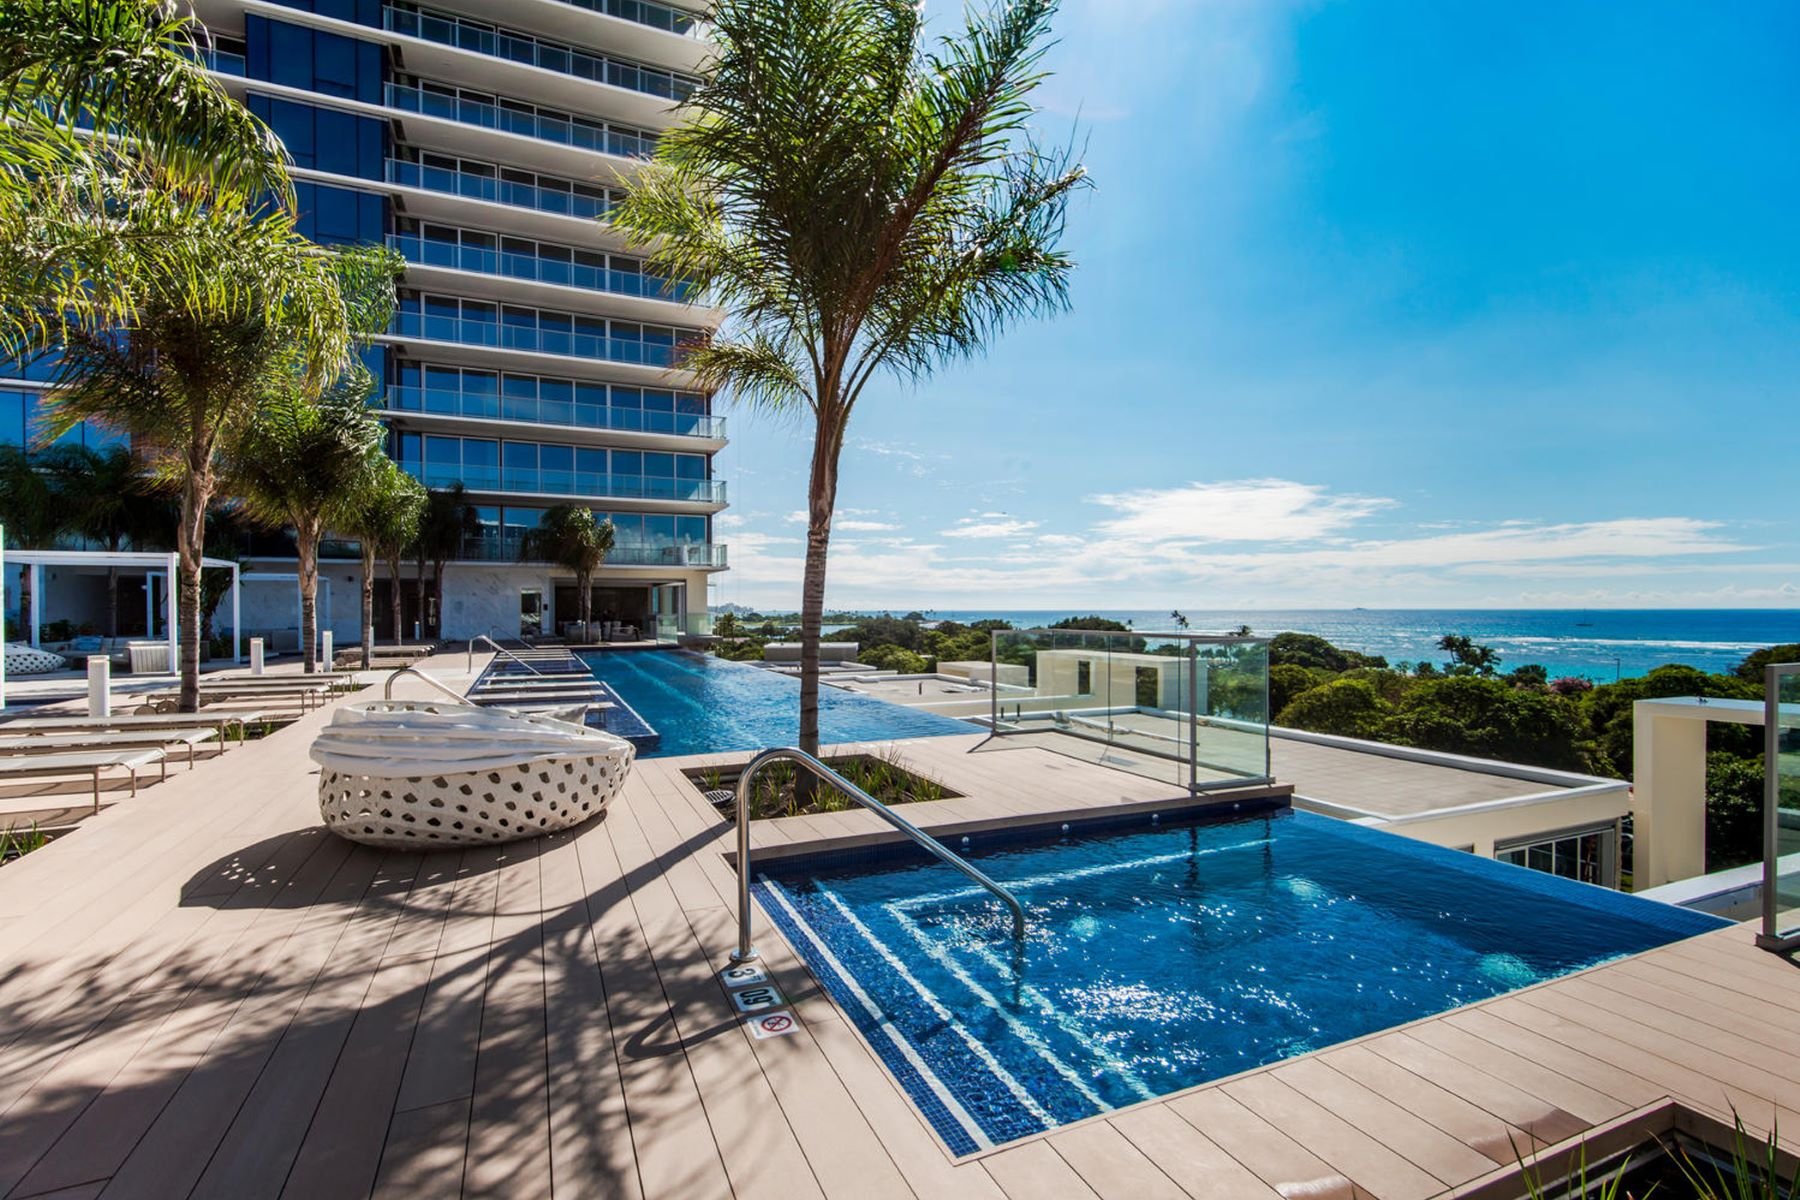 Condominium for Sale at Luxury Lifestyle 1118 Ala Moana Blvd #502 Honolulu, Hawaii 96814 United States